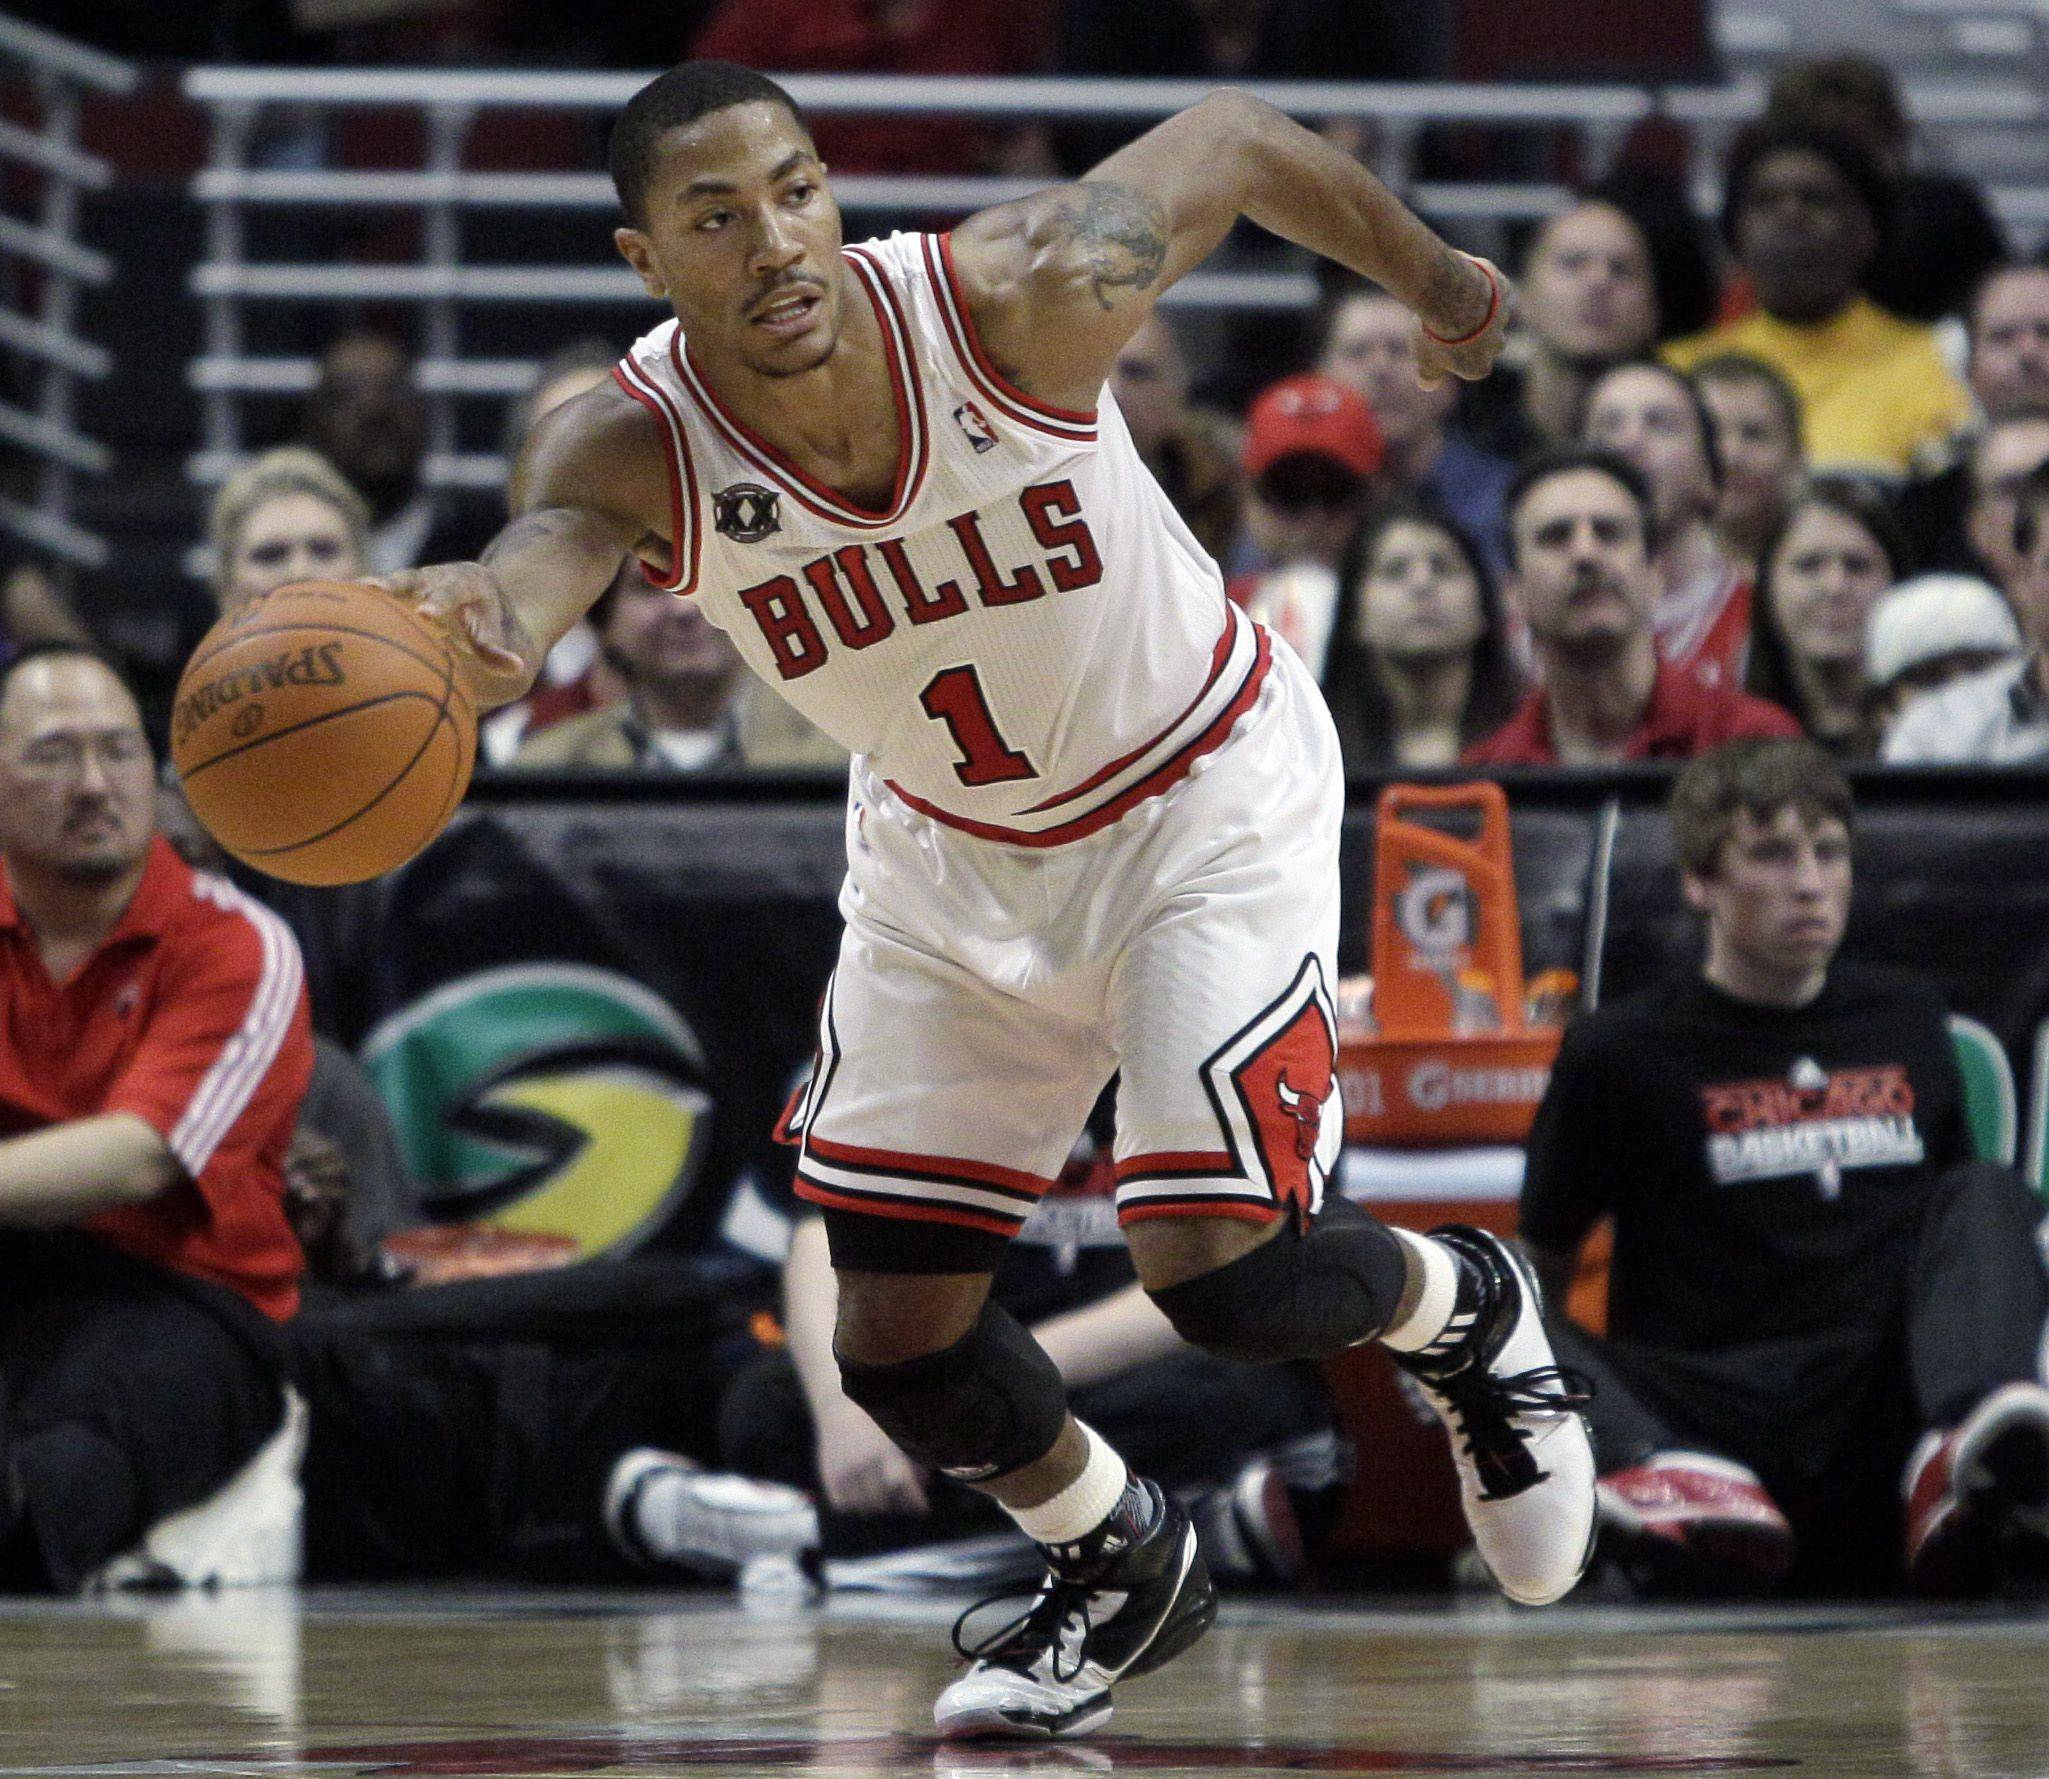 Chicago Bulls' Derrick Rose looks to a pass during the third quarter of an NBA basketball game against the Golden State Warriors in Chicago, Thursday, Nov. 11, 2010. The Bulls won 120-90.